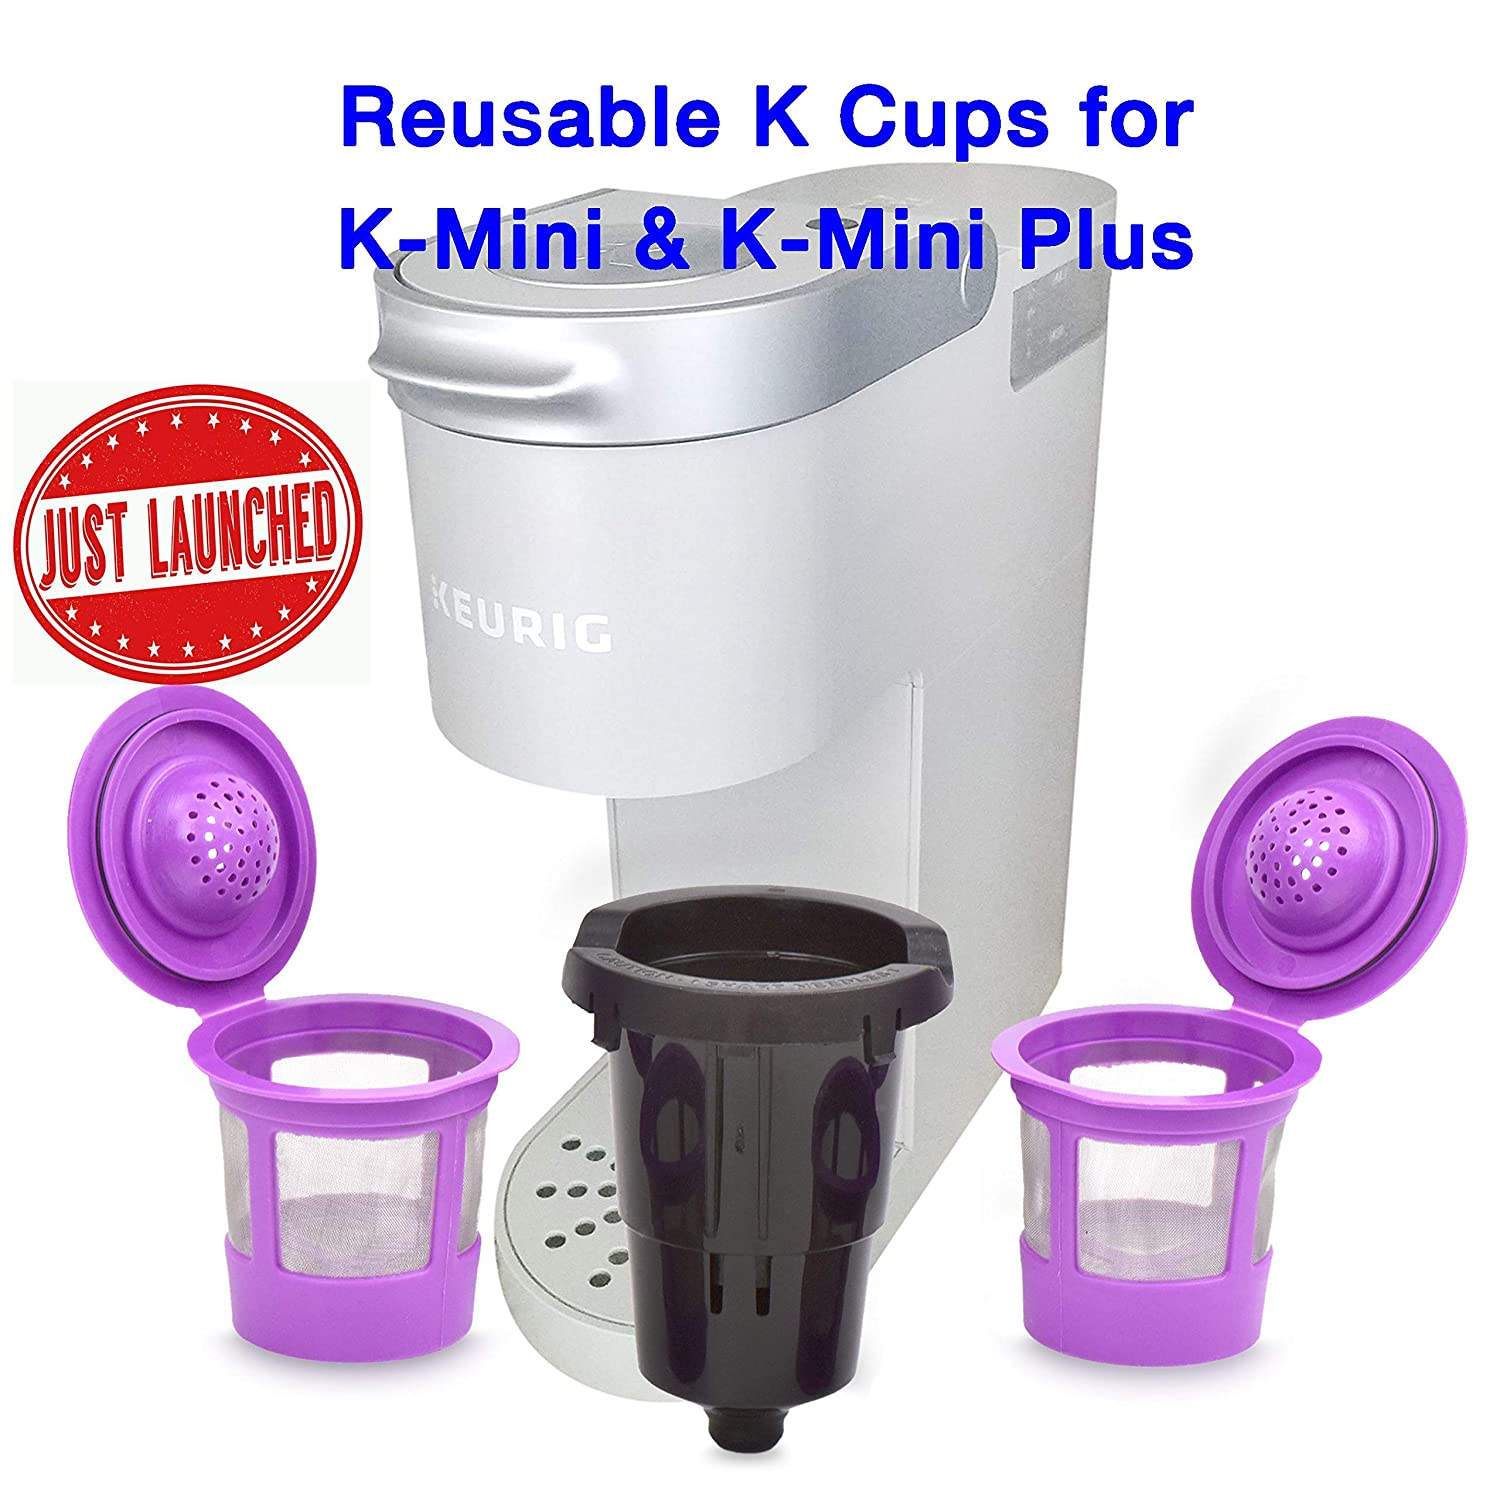 B07QGQ4RJZ Delibru Reusable K Cups For K Mini Keurig K Mini Plus with Adapter | Keurig Mini Plus Reusable K Cups for Mini Keurig 818797aLG2L